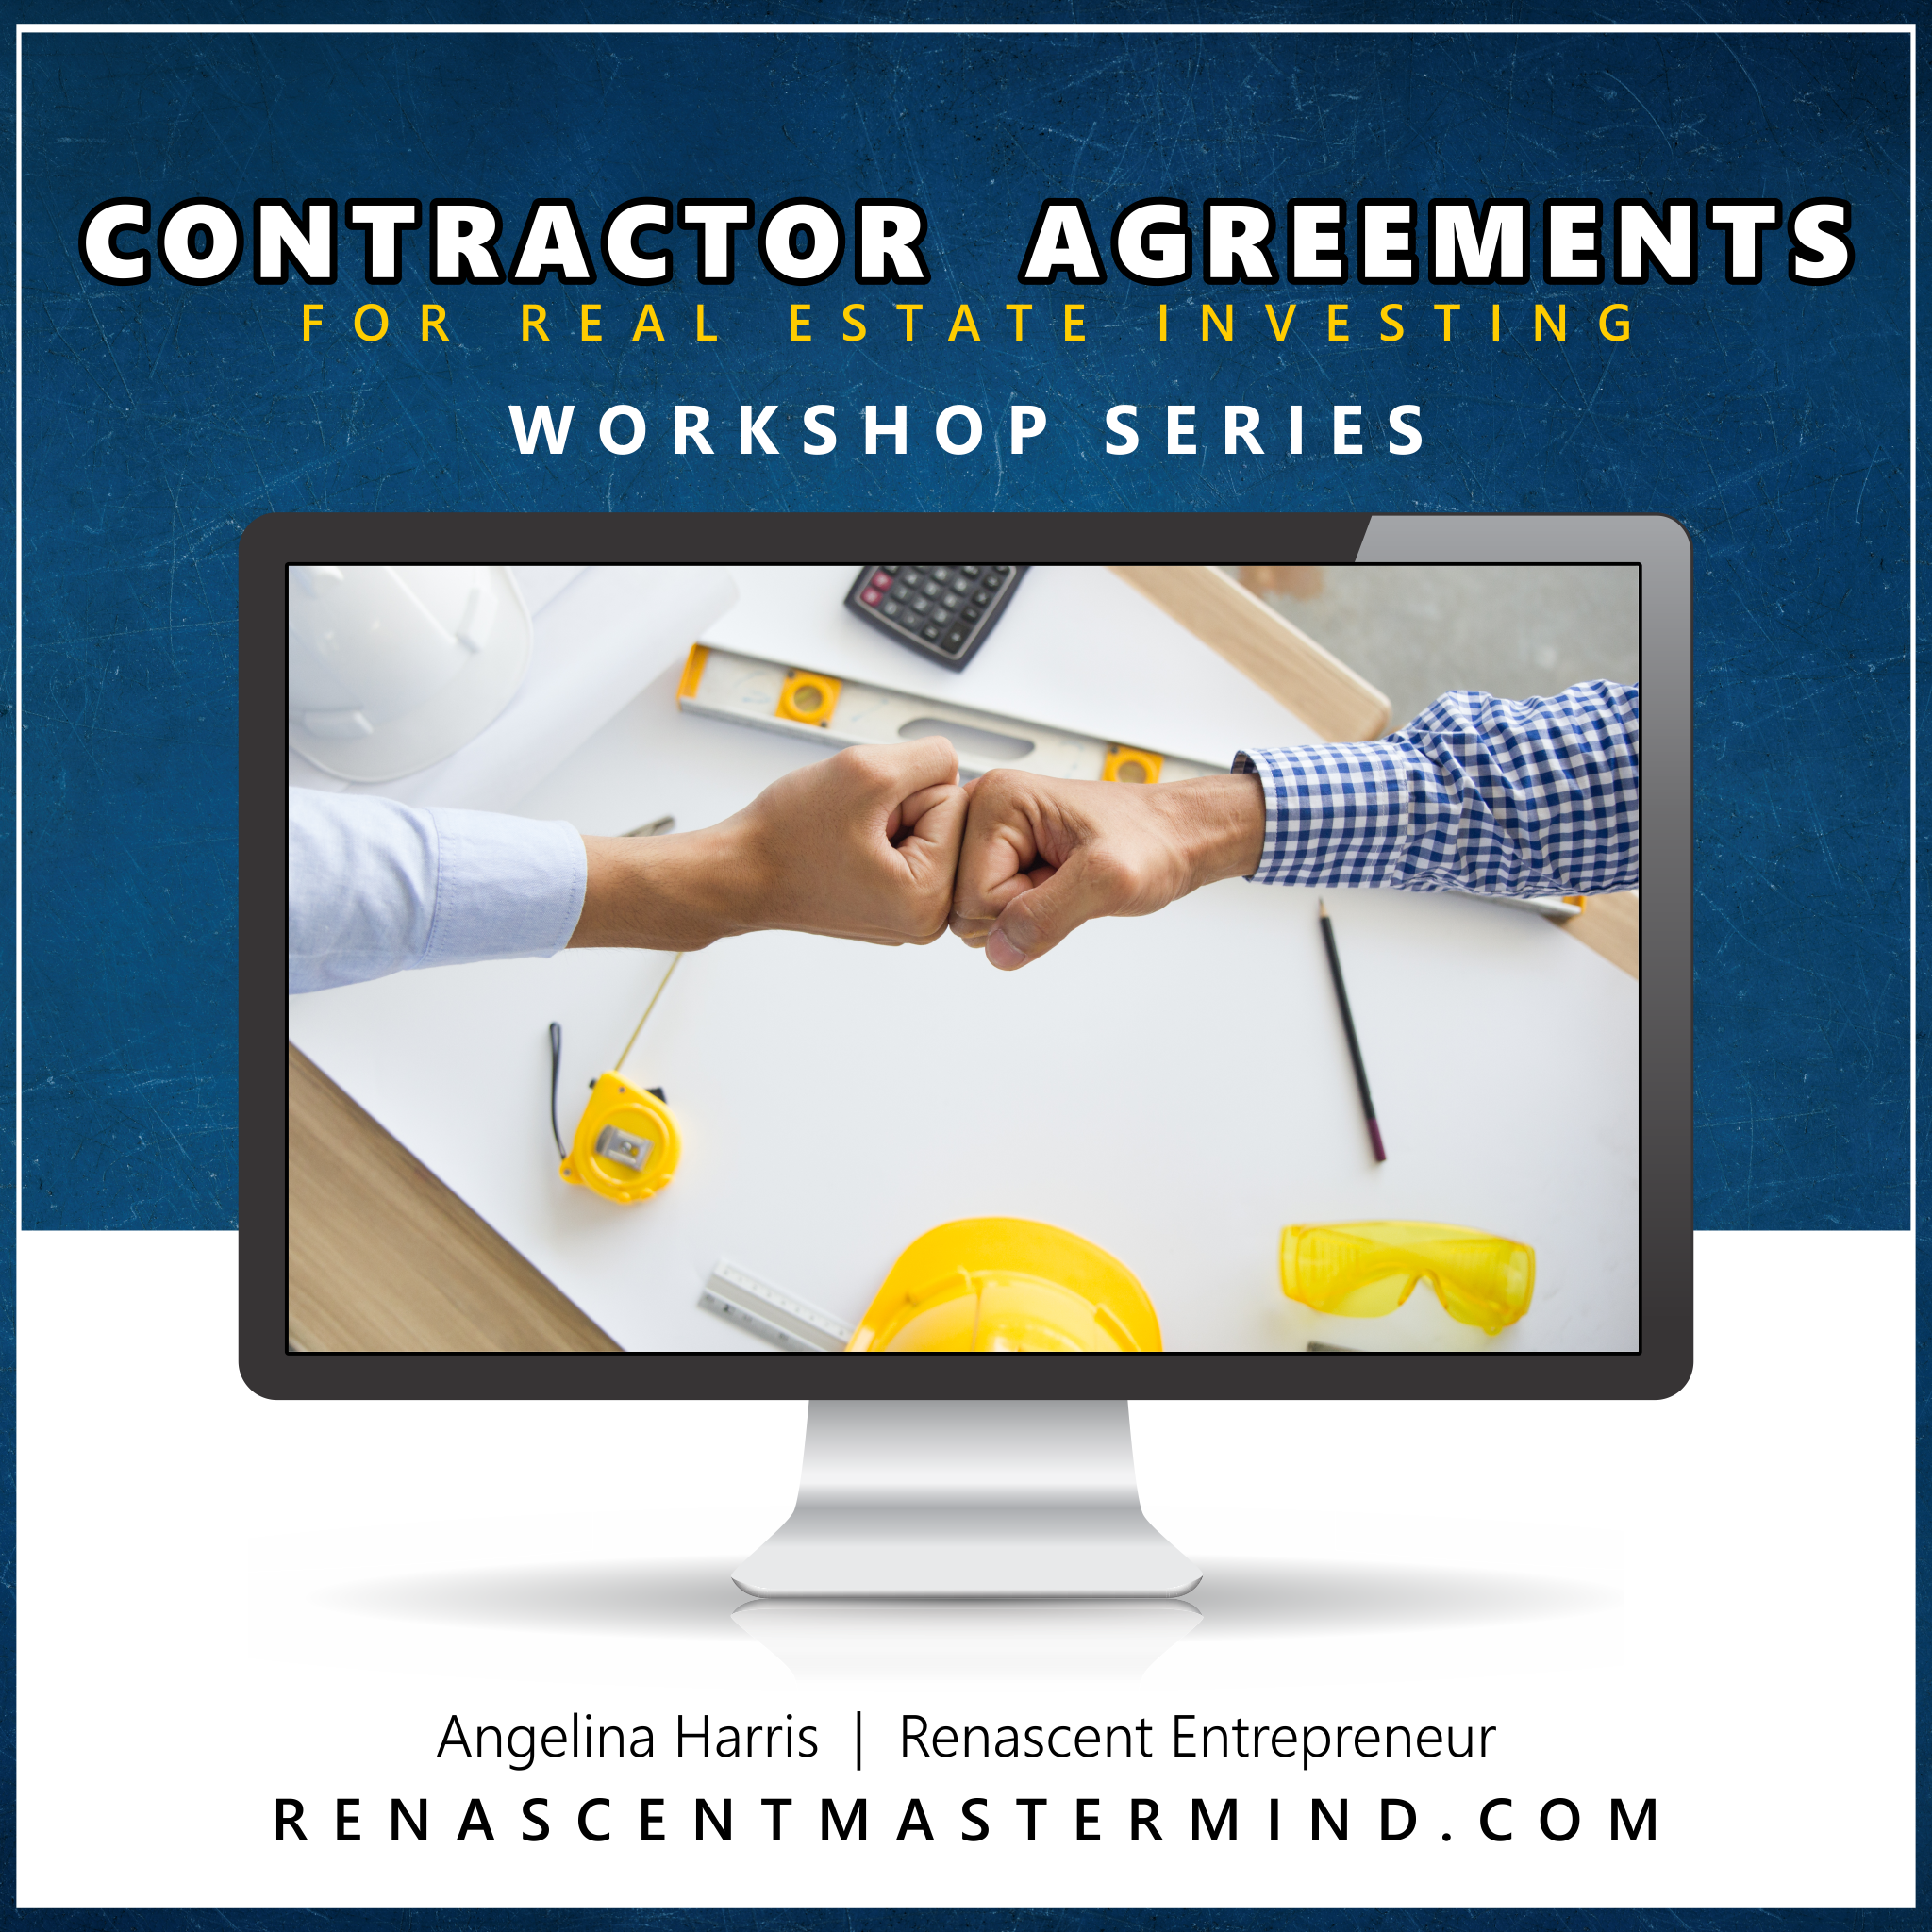 Copy of Contractor Agreements | Workshop Series with Renascent Mastermind